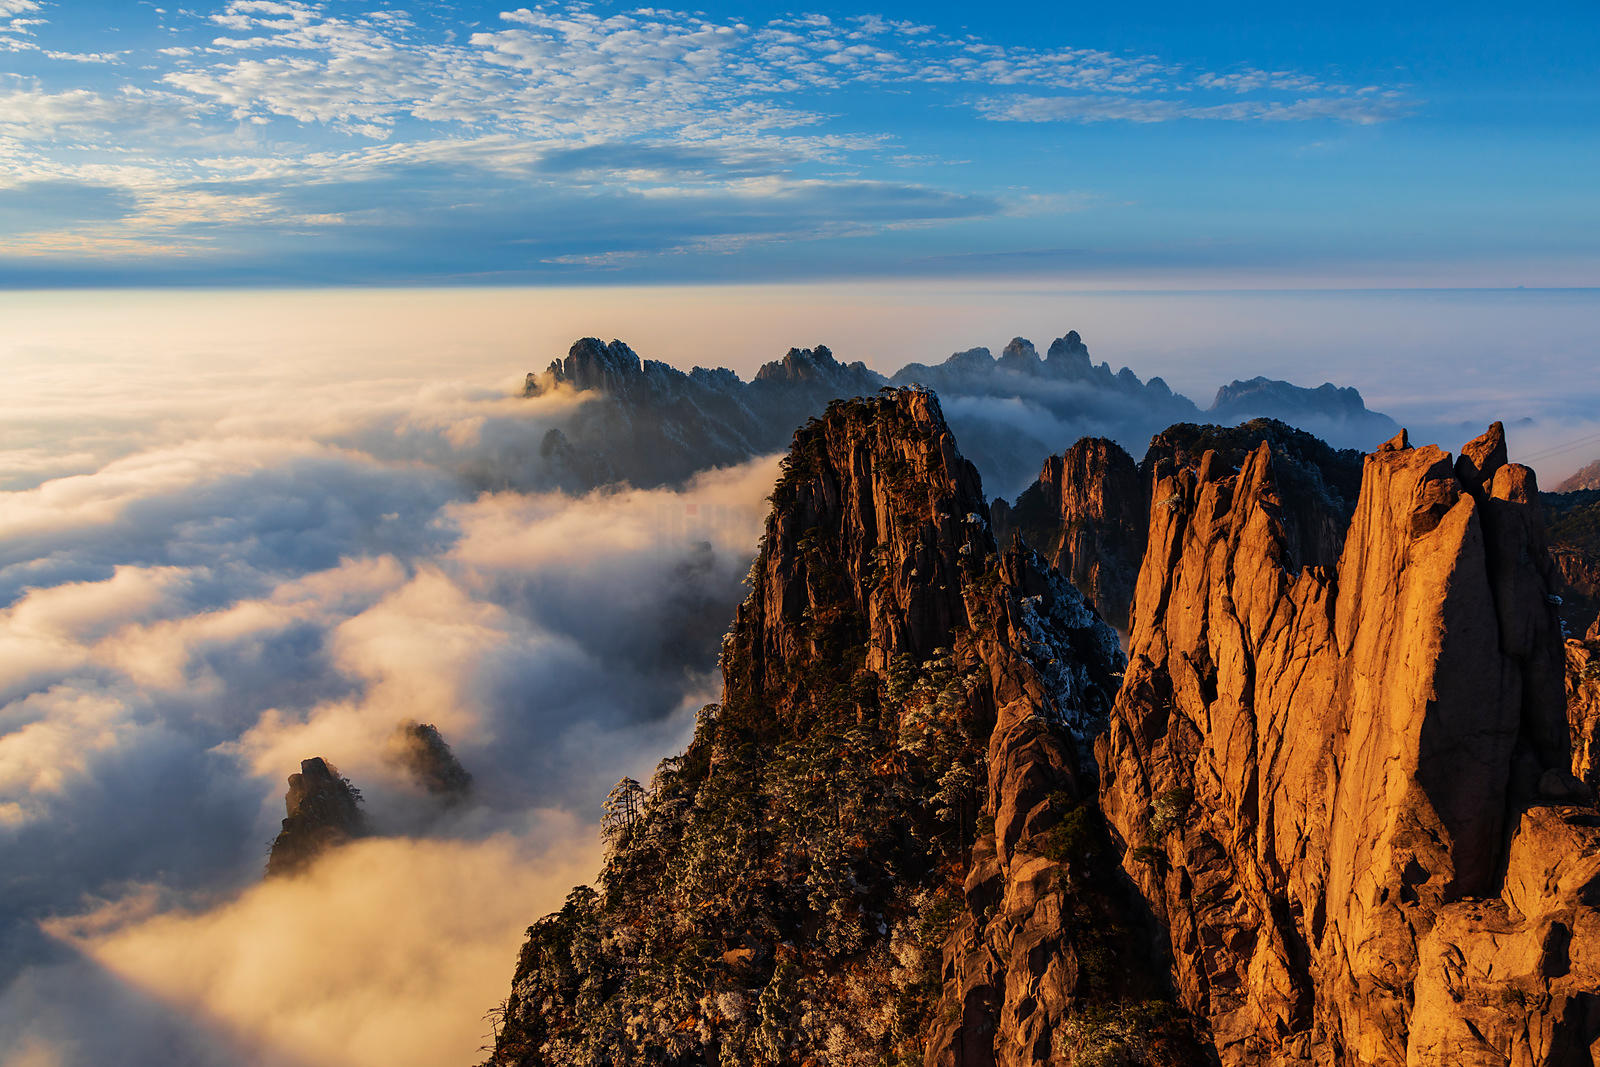 Elevated View of the Huangshan Mountains from the Circle of Peaks Viewpoint